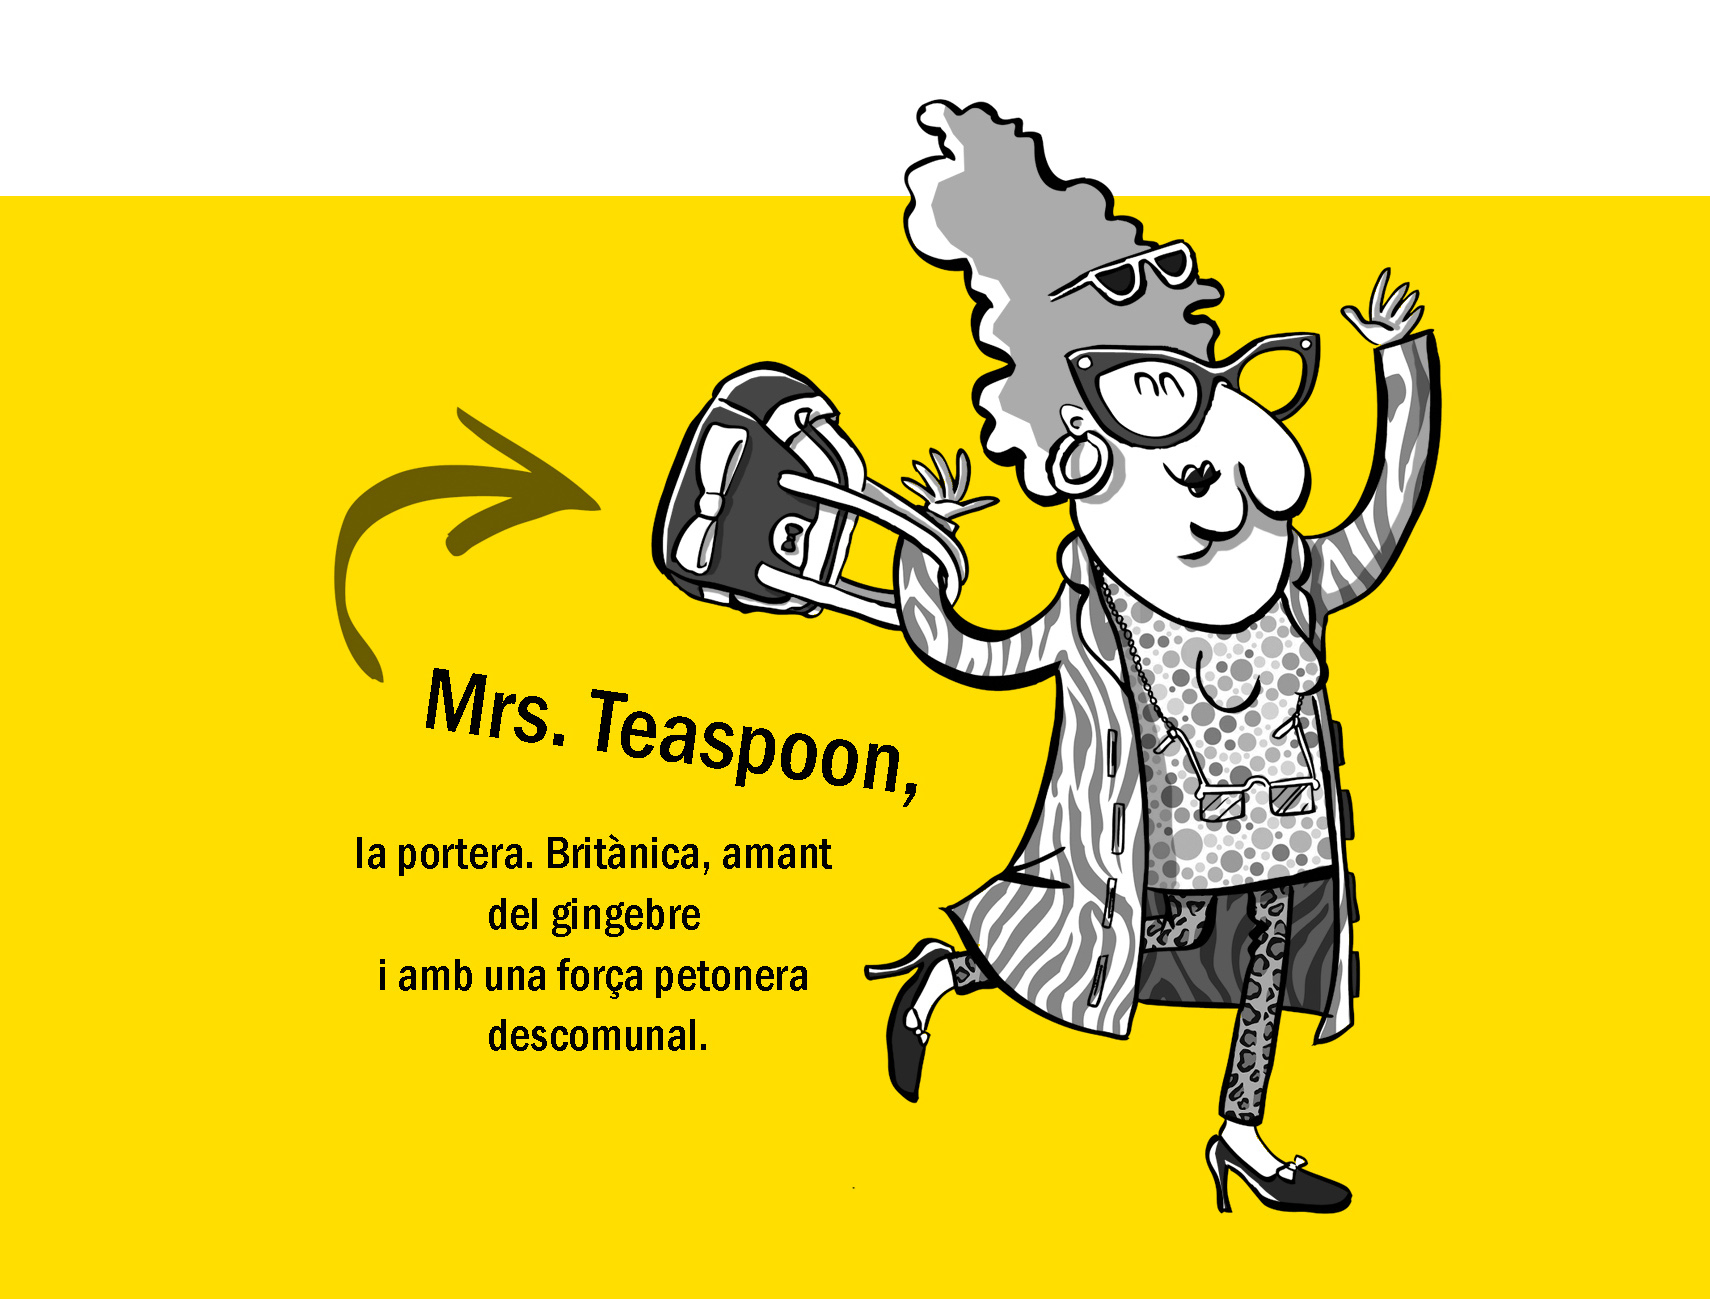 Mrs. Teaspoon